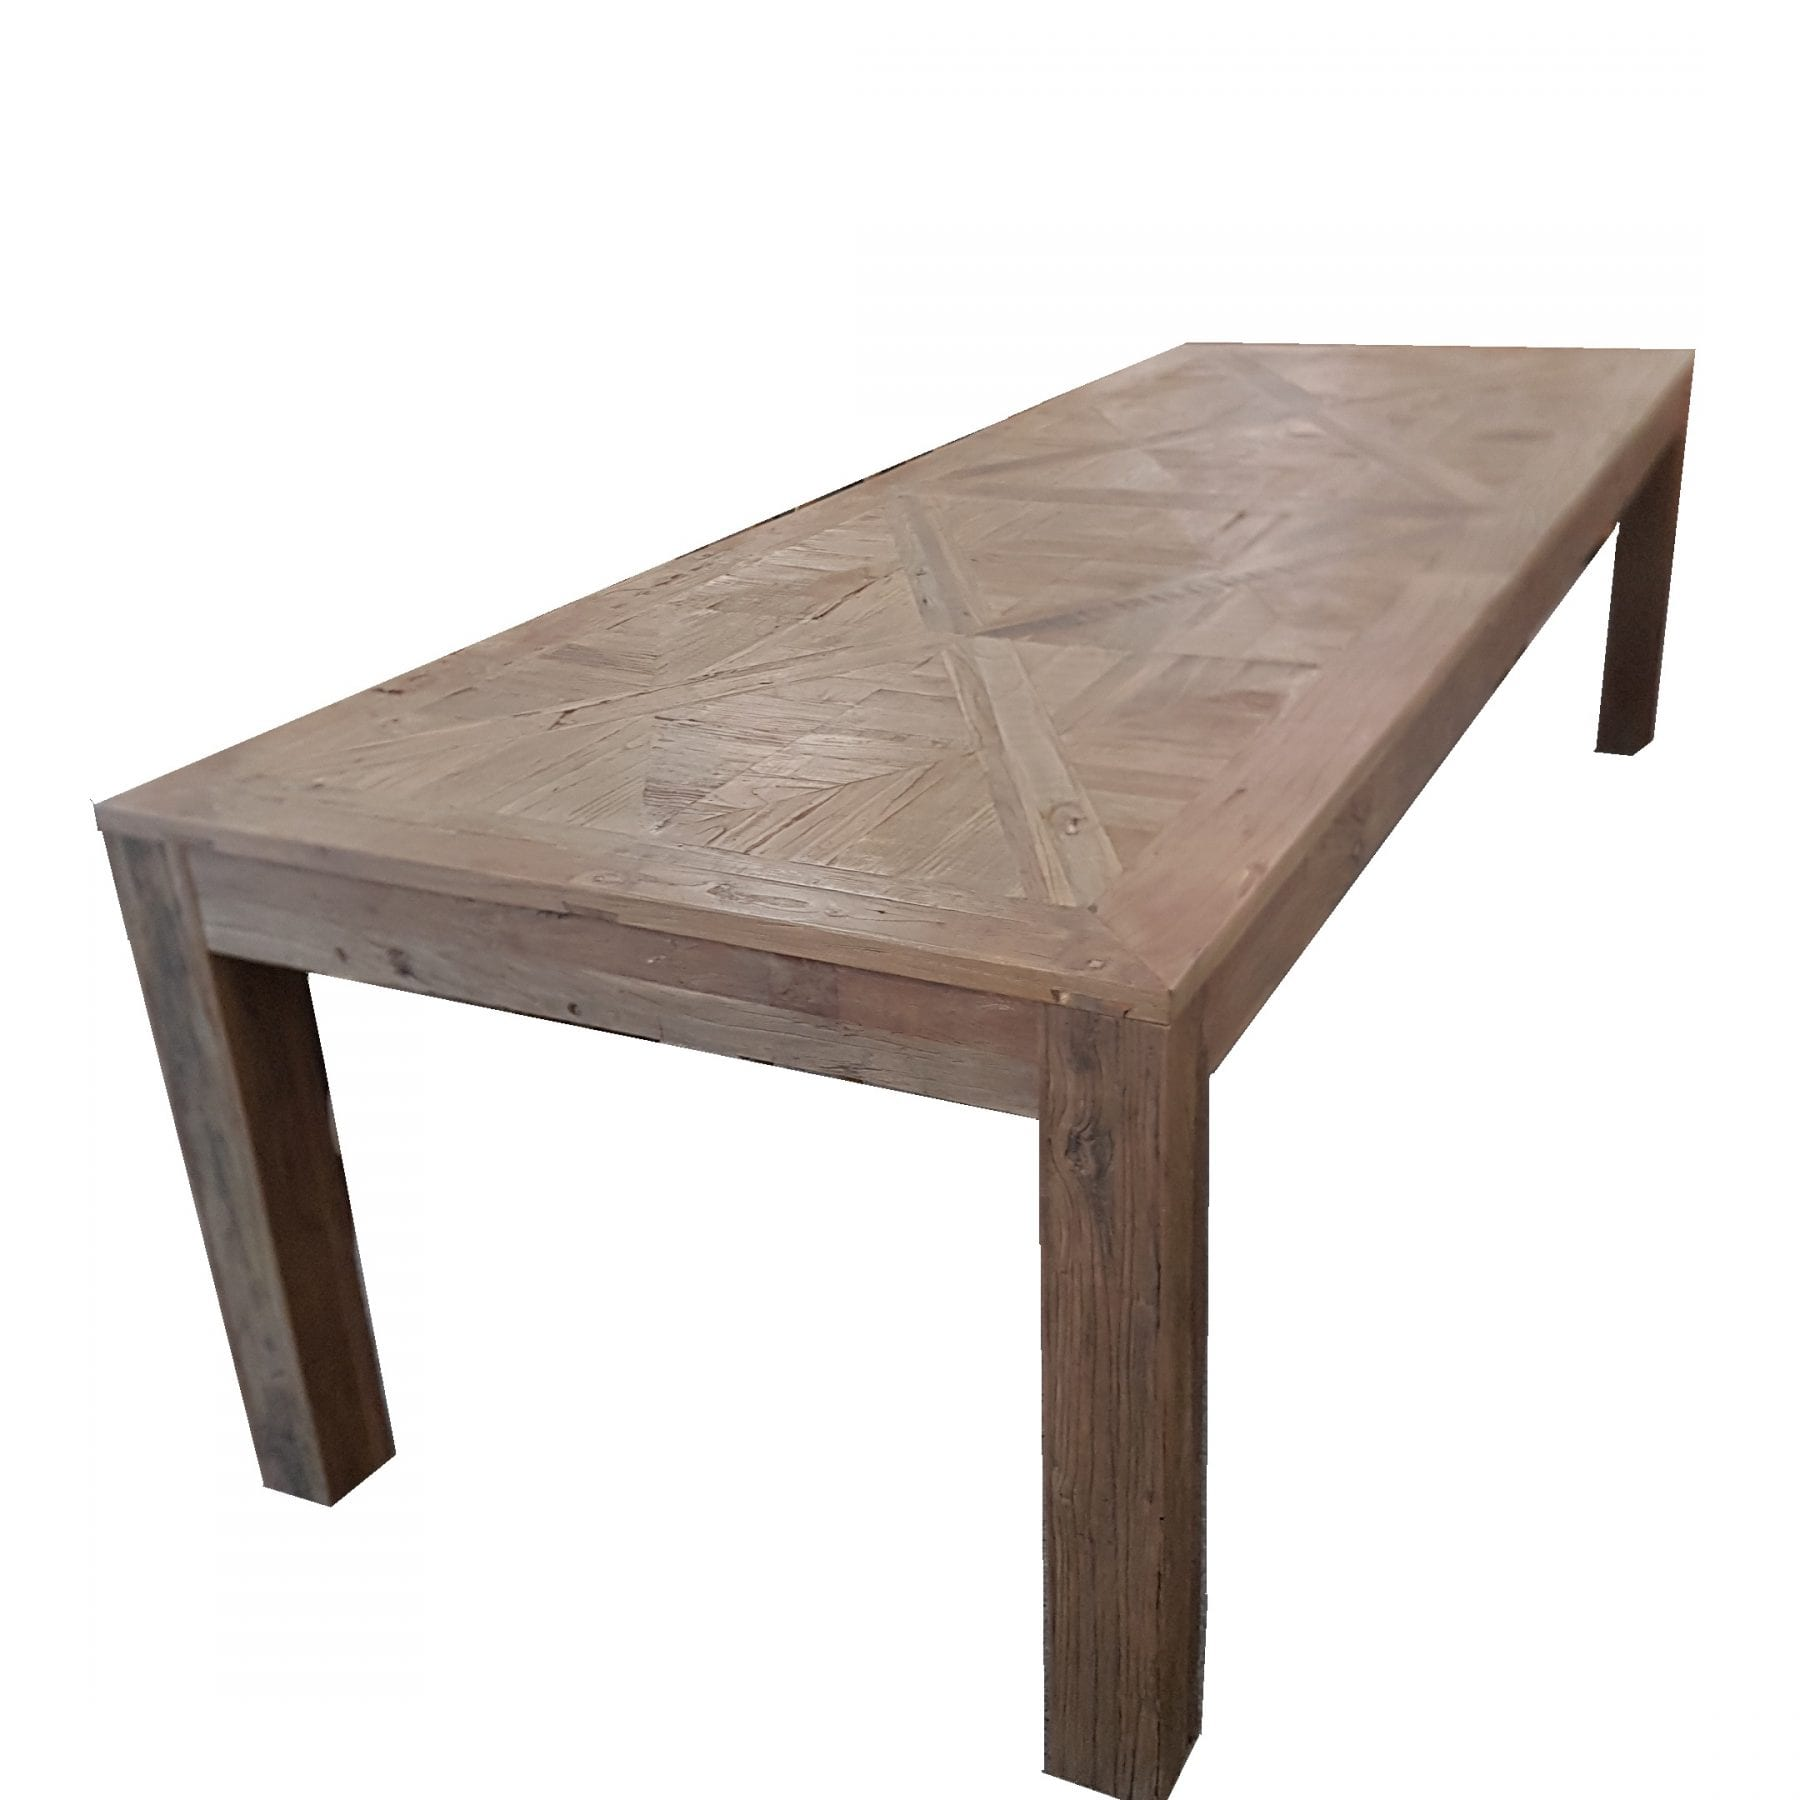 Elm Parquet Table